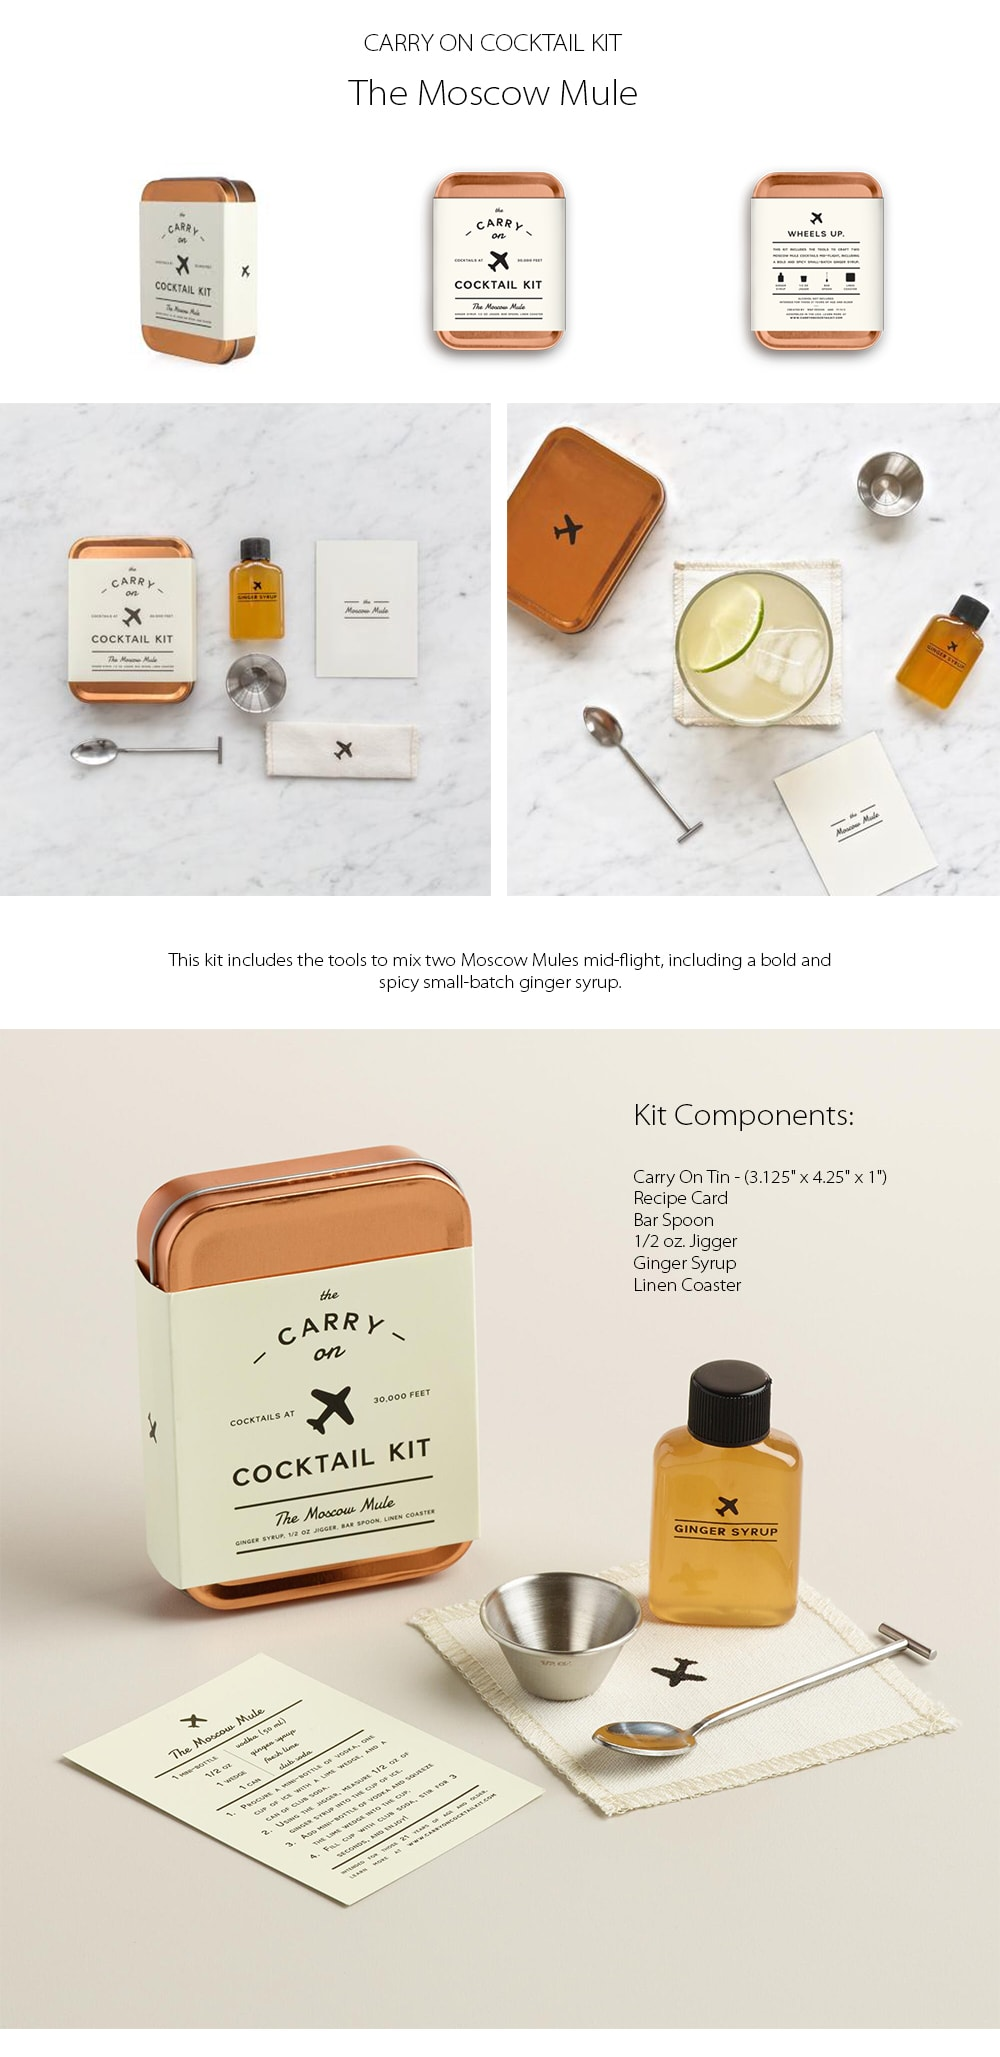 Carry On Cocktail Kit - The Moscow Mule Bold And Spicy Small-batch Ginger Syrup